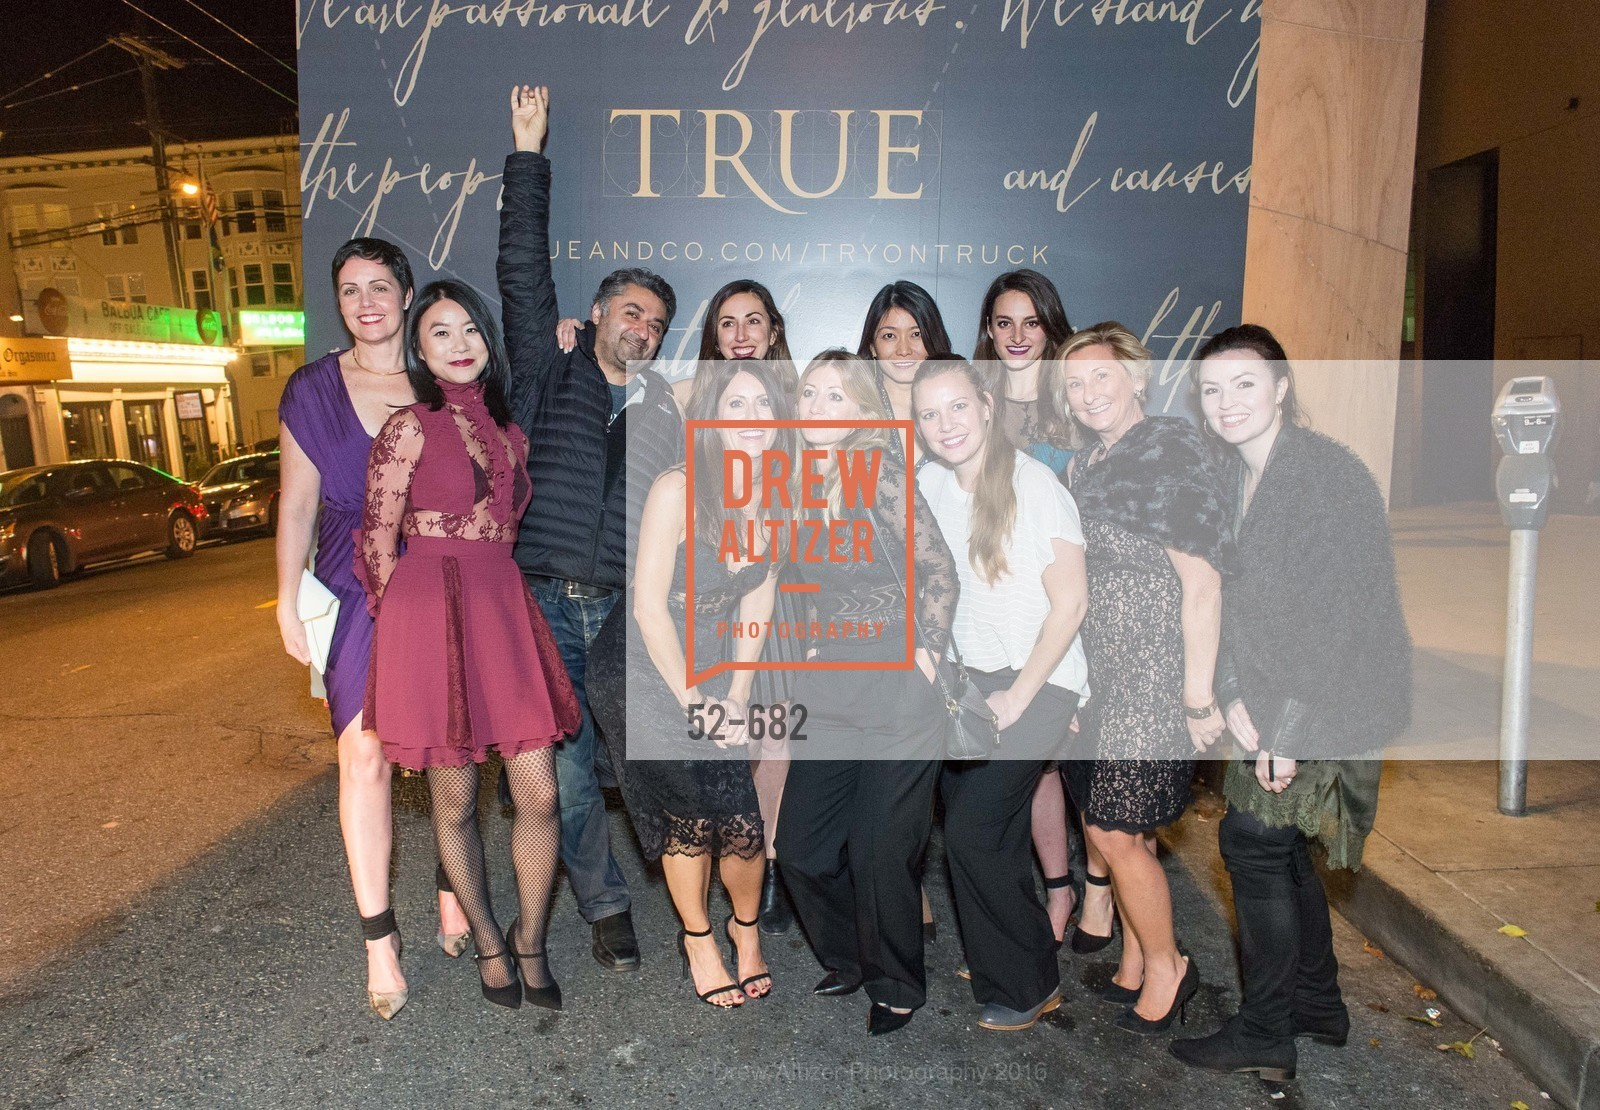 True And Co Group Photo, Photo #52-682